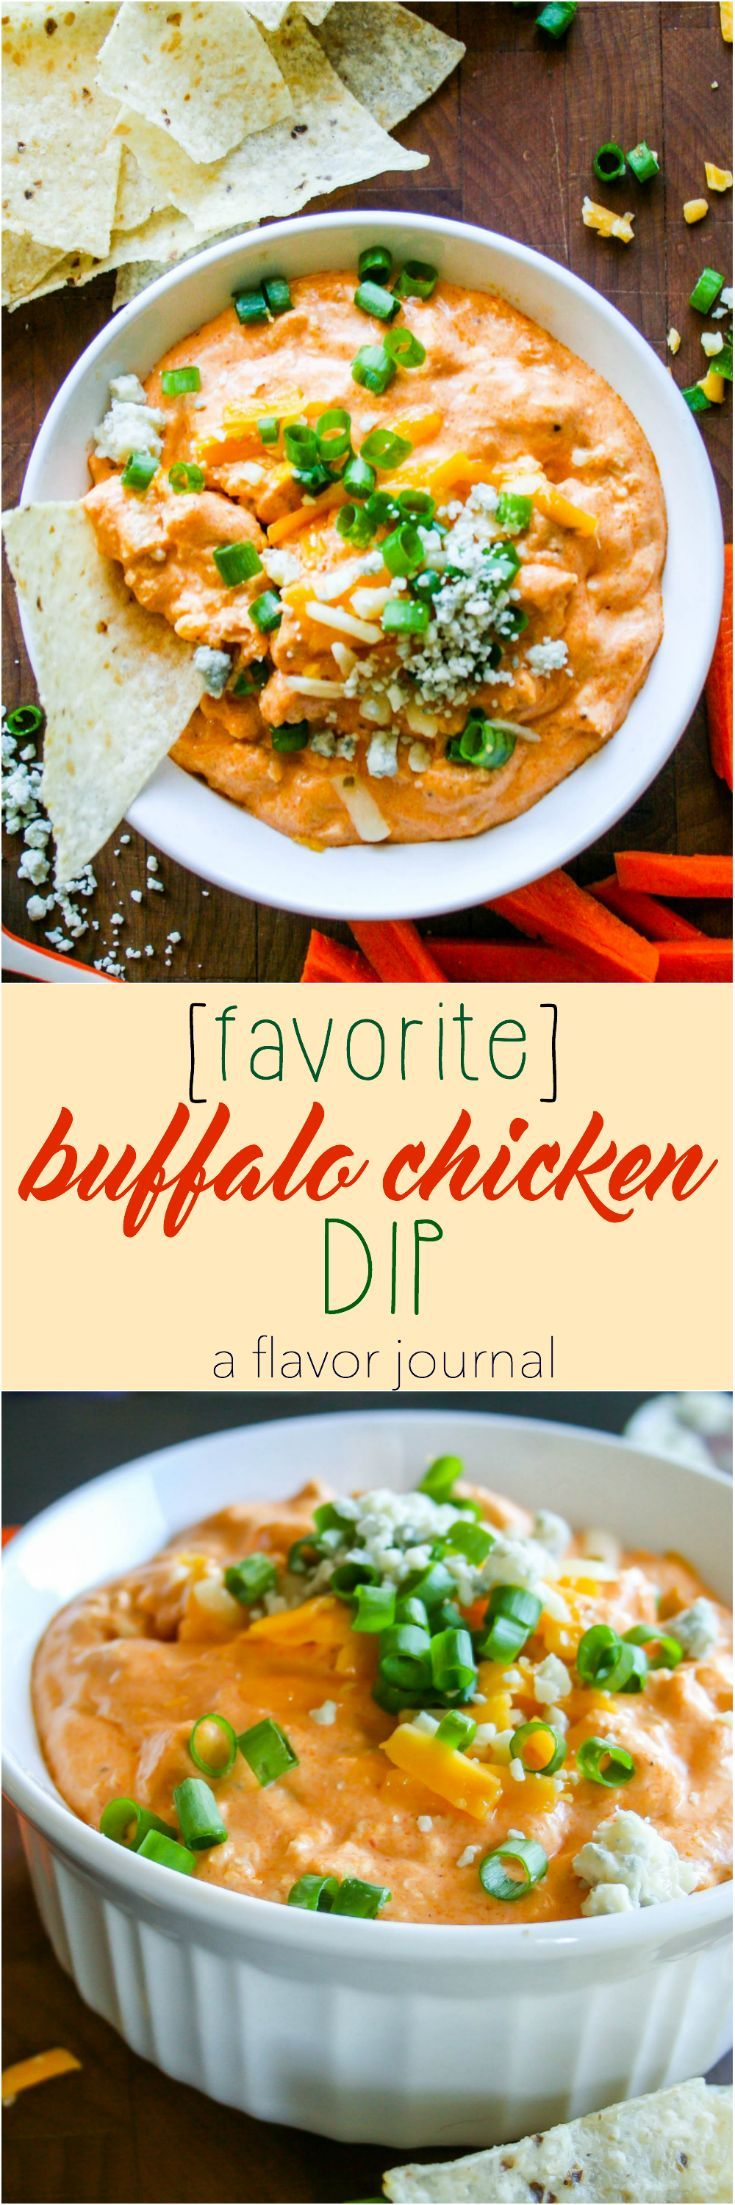 buffalo chicken dip is the PERFECT party food! this recipe is devoured in seconds. rotisserie chicken, hot sauce, cream cheese, sour cream, ranch dressing, and cheddar cheese make it perfectly blended and delicious! buffalo chicken dip | a flavor journal http://aflavorjournal.com/buffalo-chicken-dip/